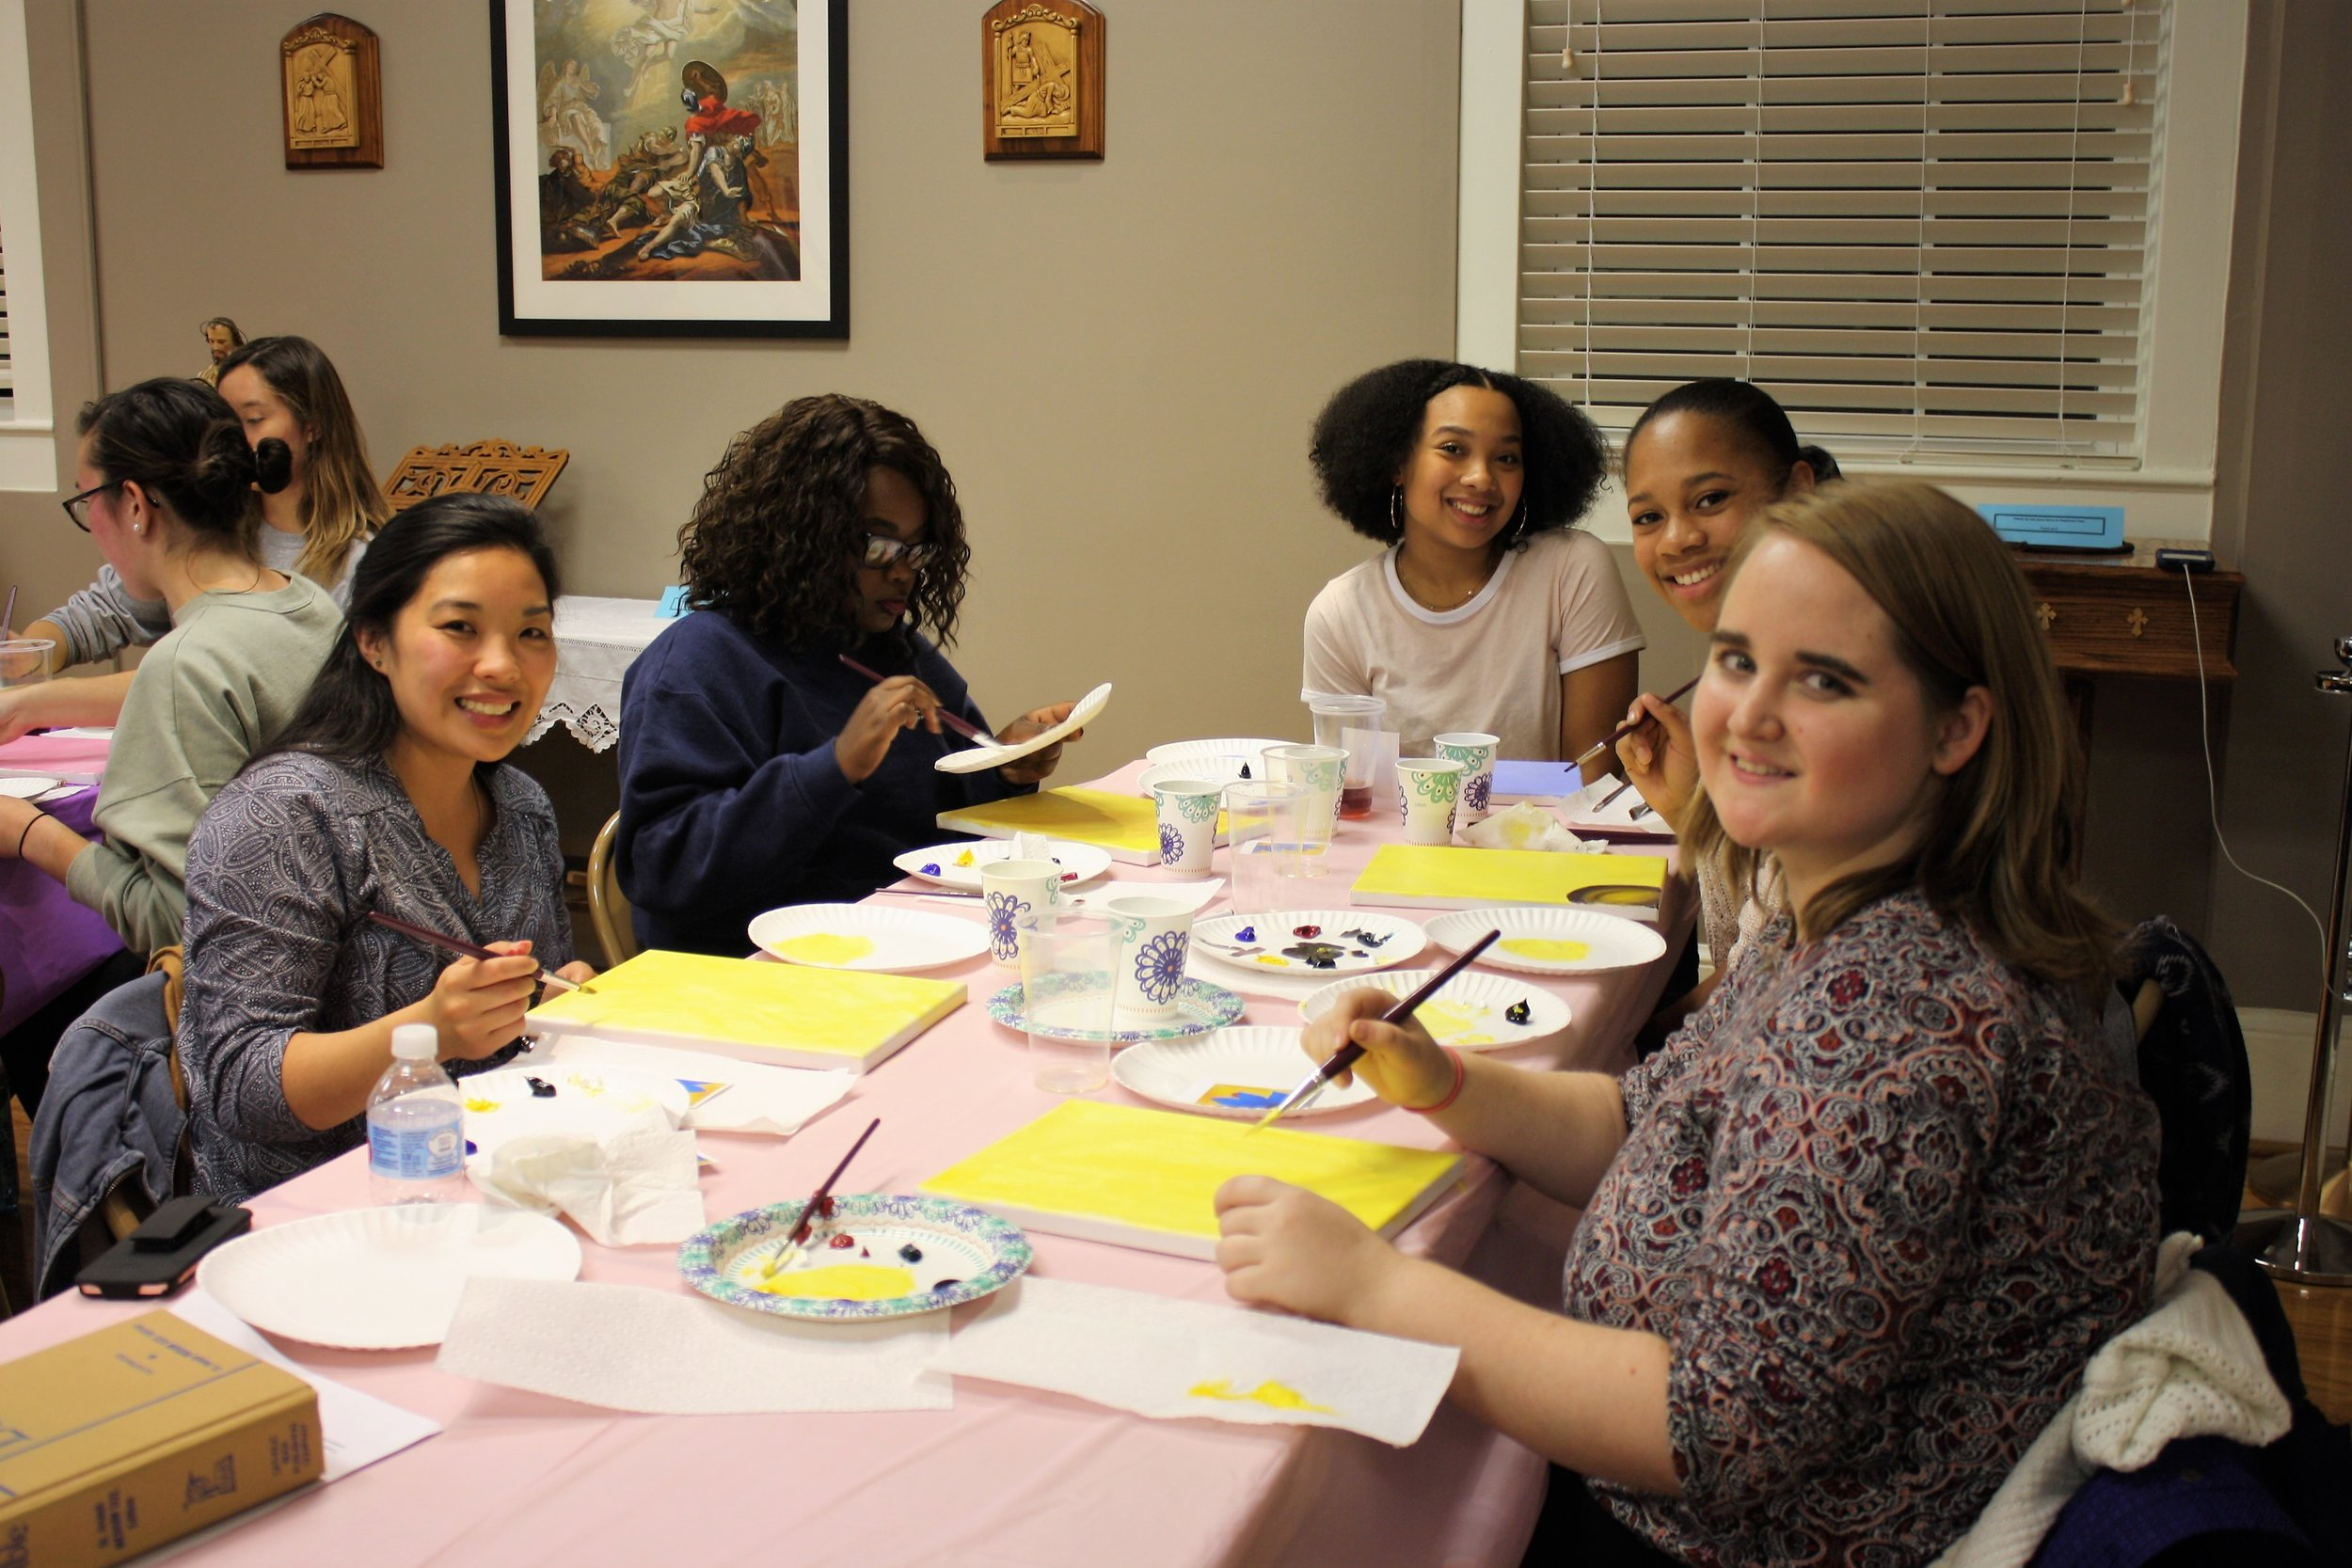 Women's Paint and Formation Night